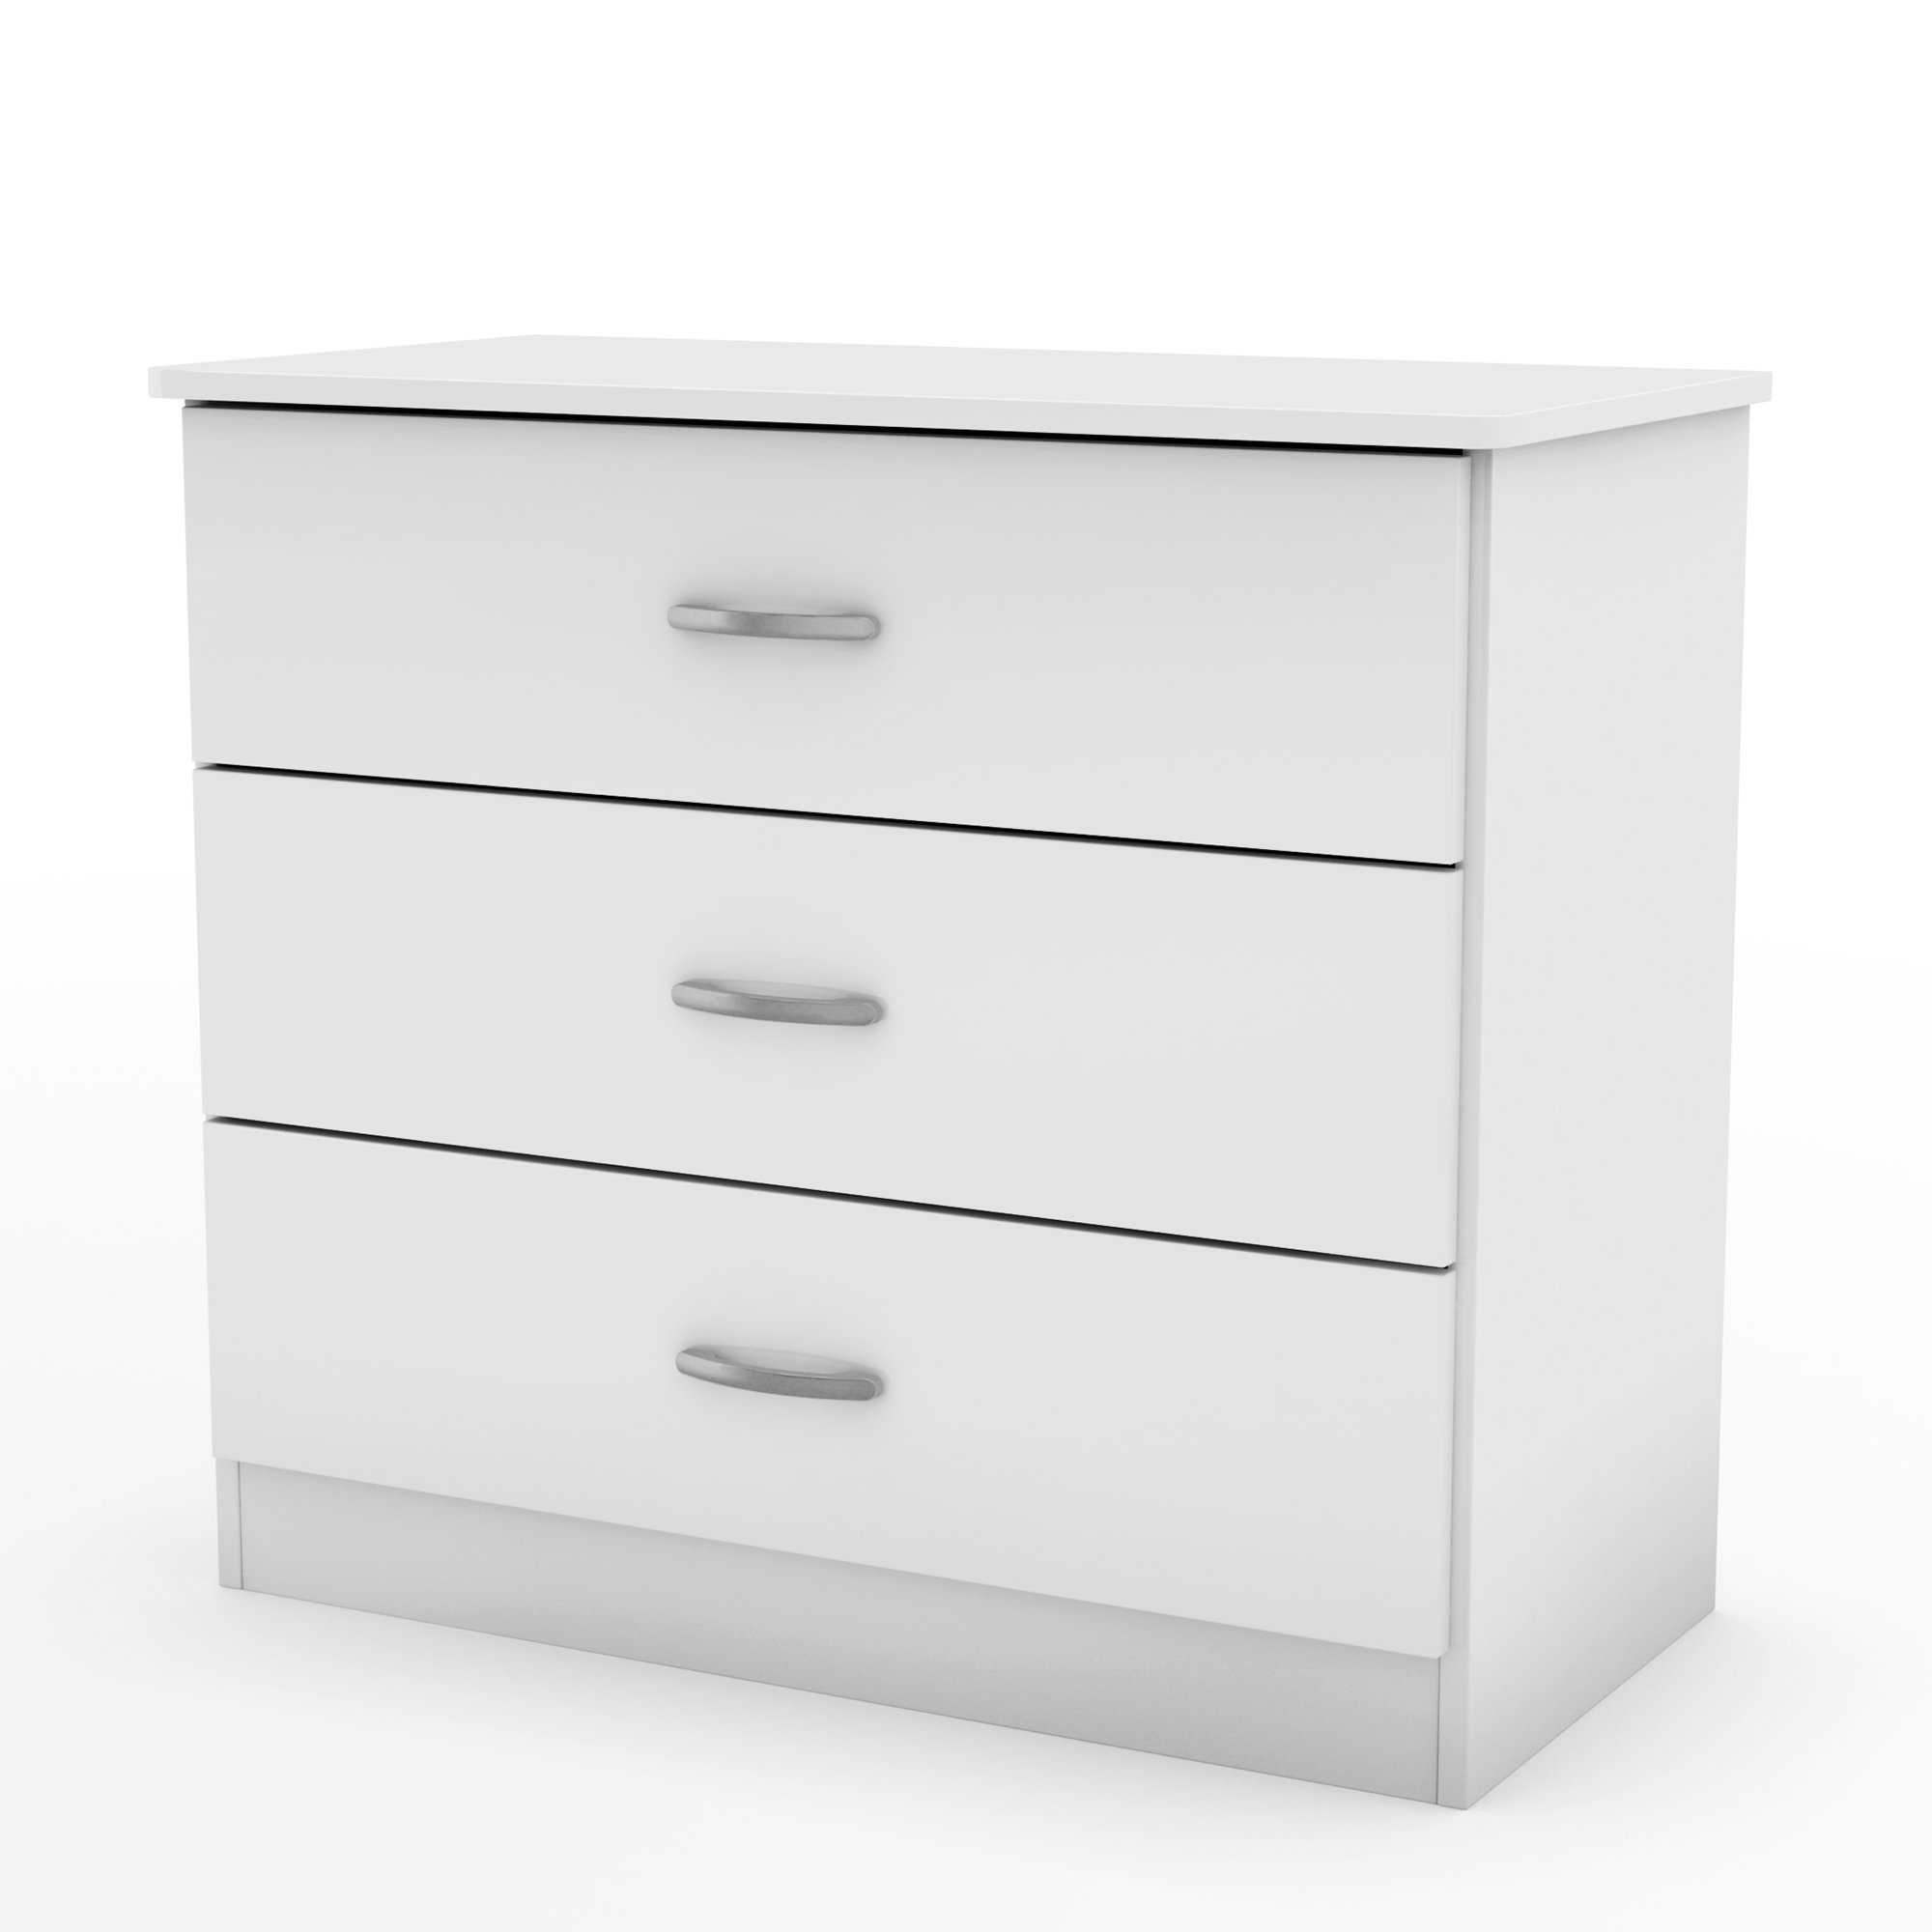 South Shore Libra Collection 3-Drawer Dresser, Pure White with Metal Handles in Pewter Finish